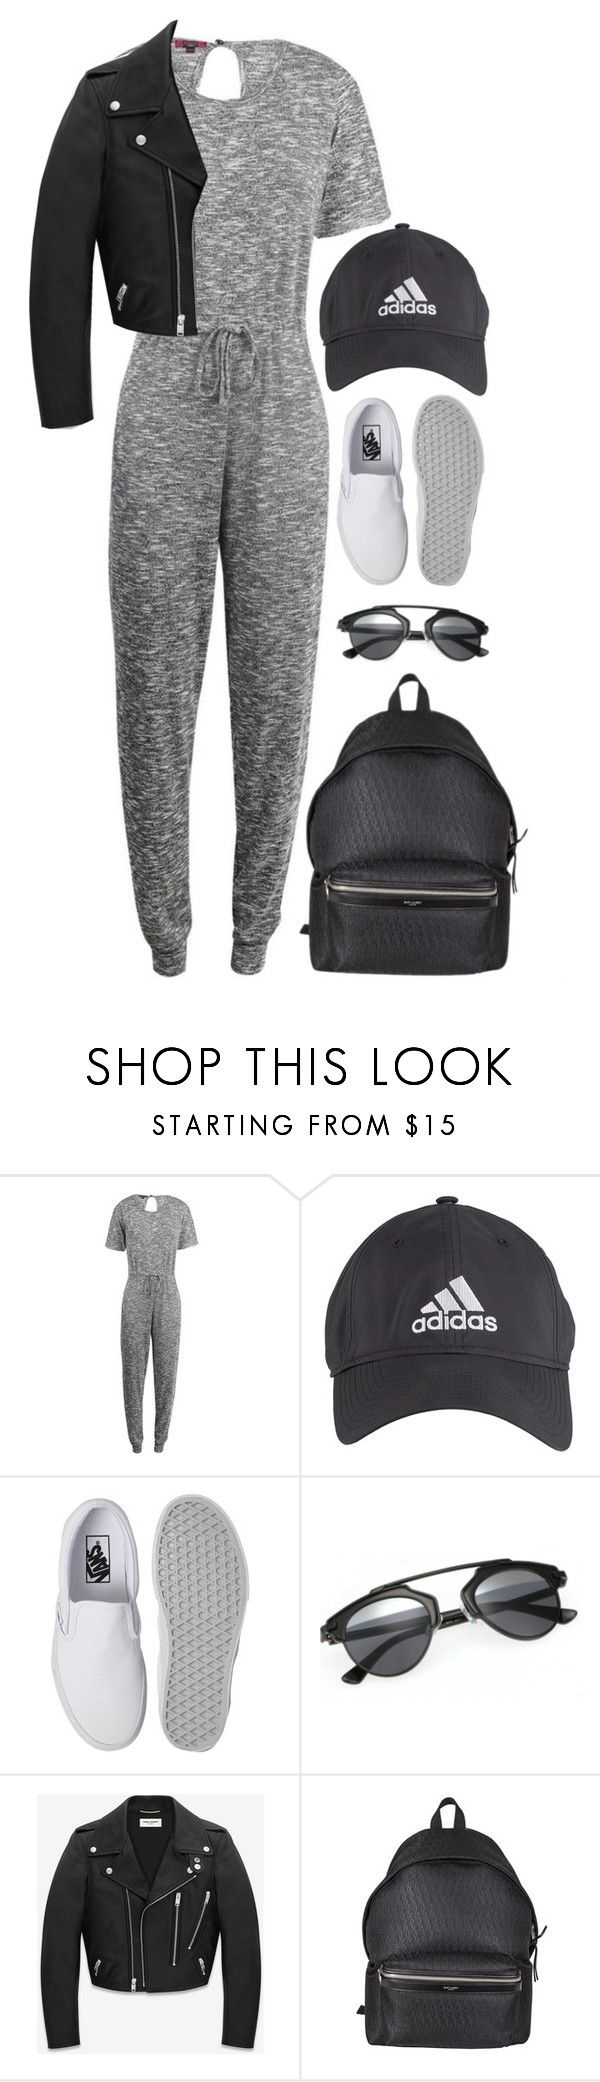 """""""Sporty"""" by luvsassyselfie ❤ liked on Polyvore featuring adidas, Vans, Yves Saint Laurent, black and gray"""